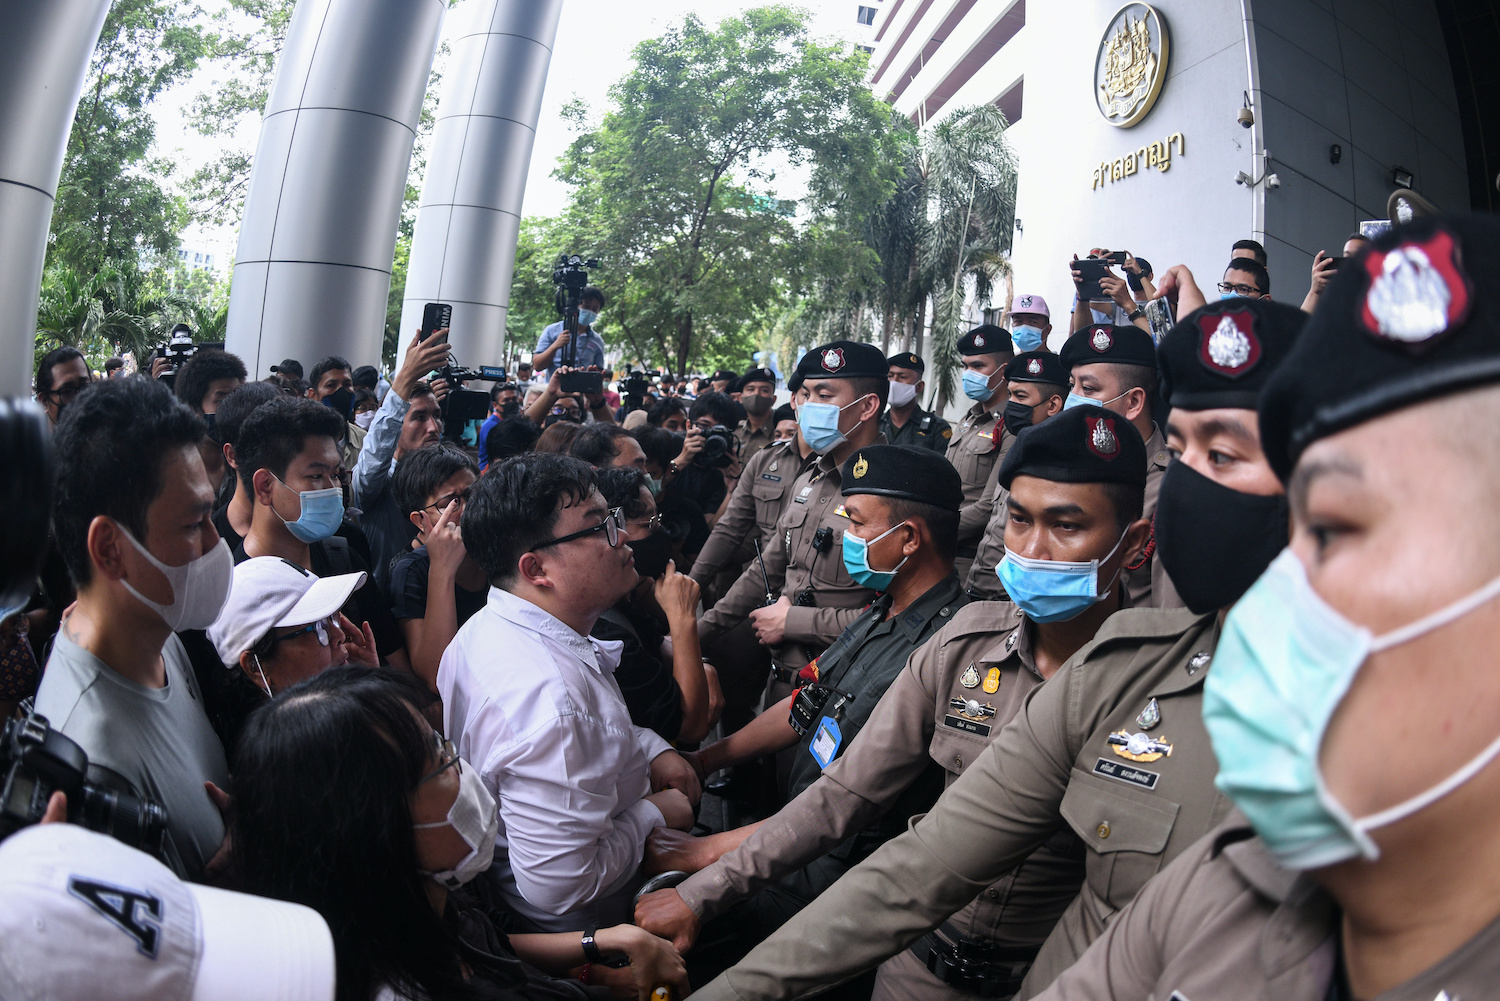 """Pro-democracy protesters stand outside the Criminal Court building demanding that a representative be allowed inside where Anon Nampa and Panupong """"Mike Rayong"""" Jaadnok were facing a detention hearing on Saturday. (Reuters Photo)"""